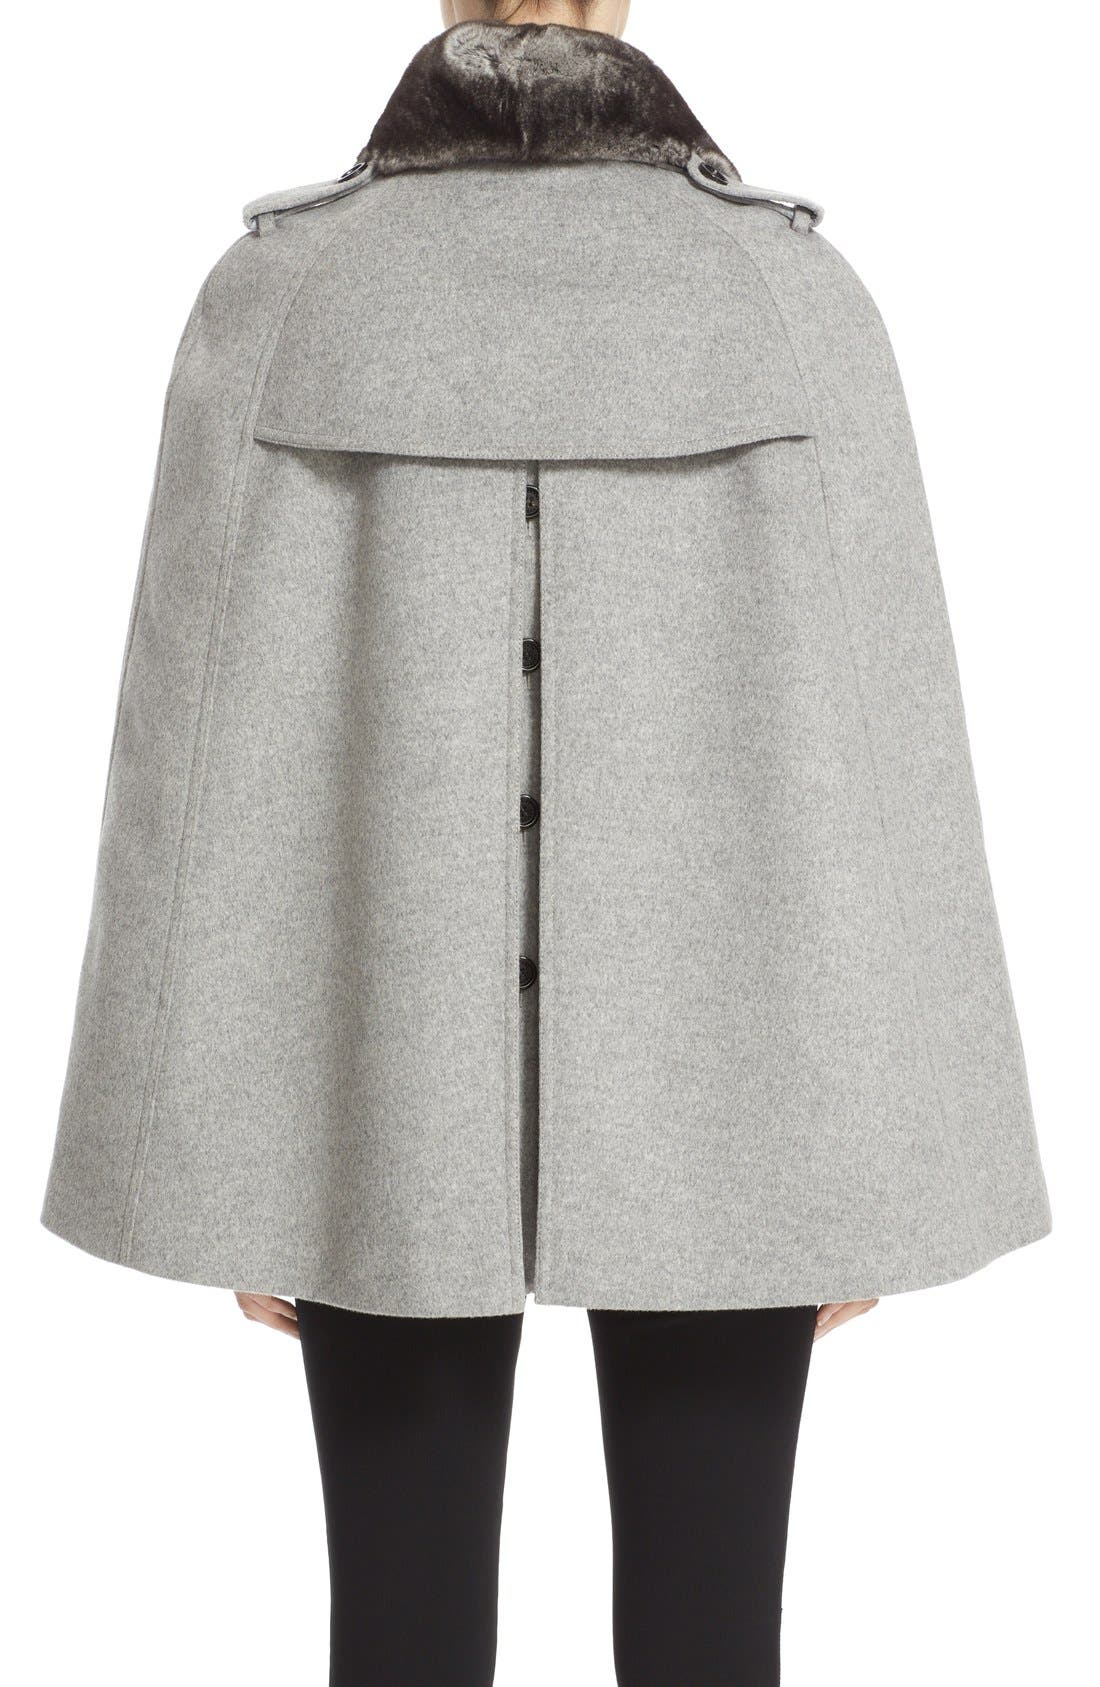 Alternate Image 2  - Burberry 'Wolseley' Wool & Cashmere Trench Cape with Removable Genuine Rabbit Fur Collar